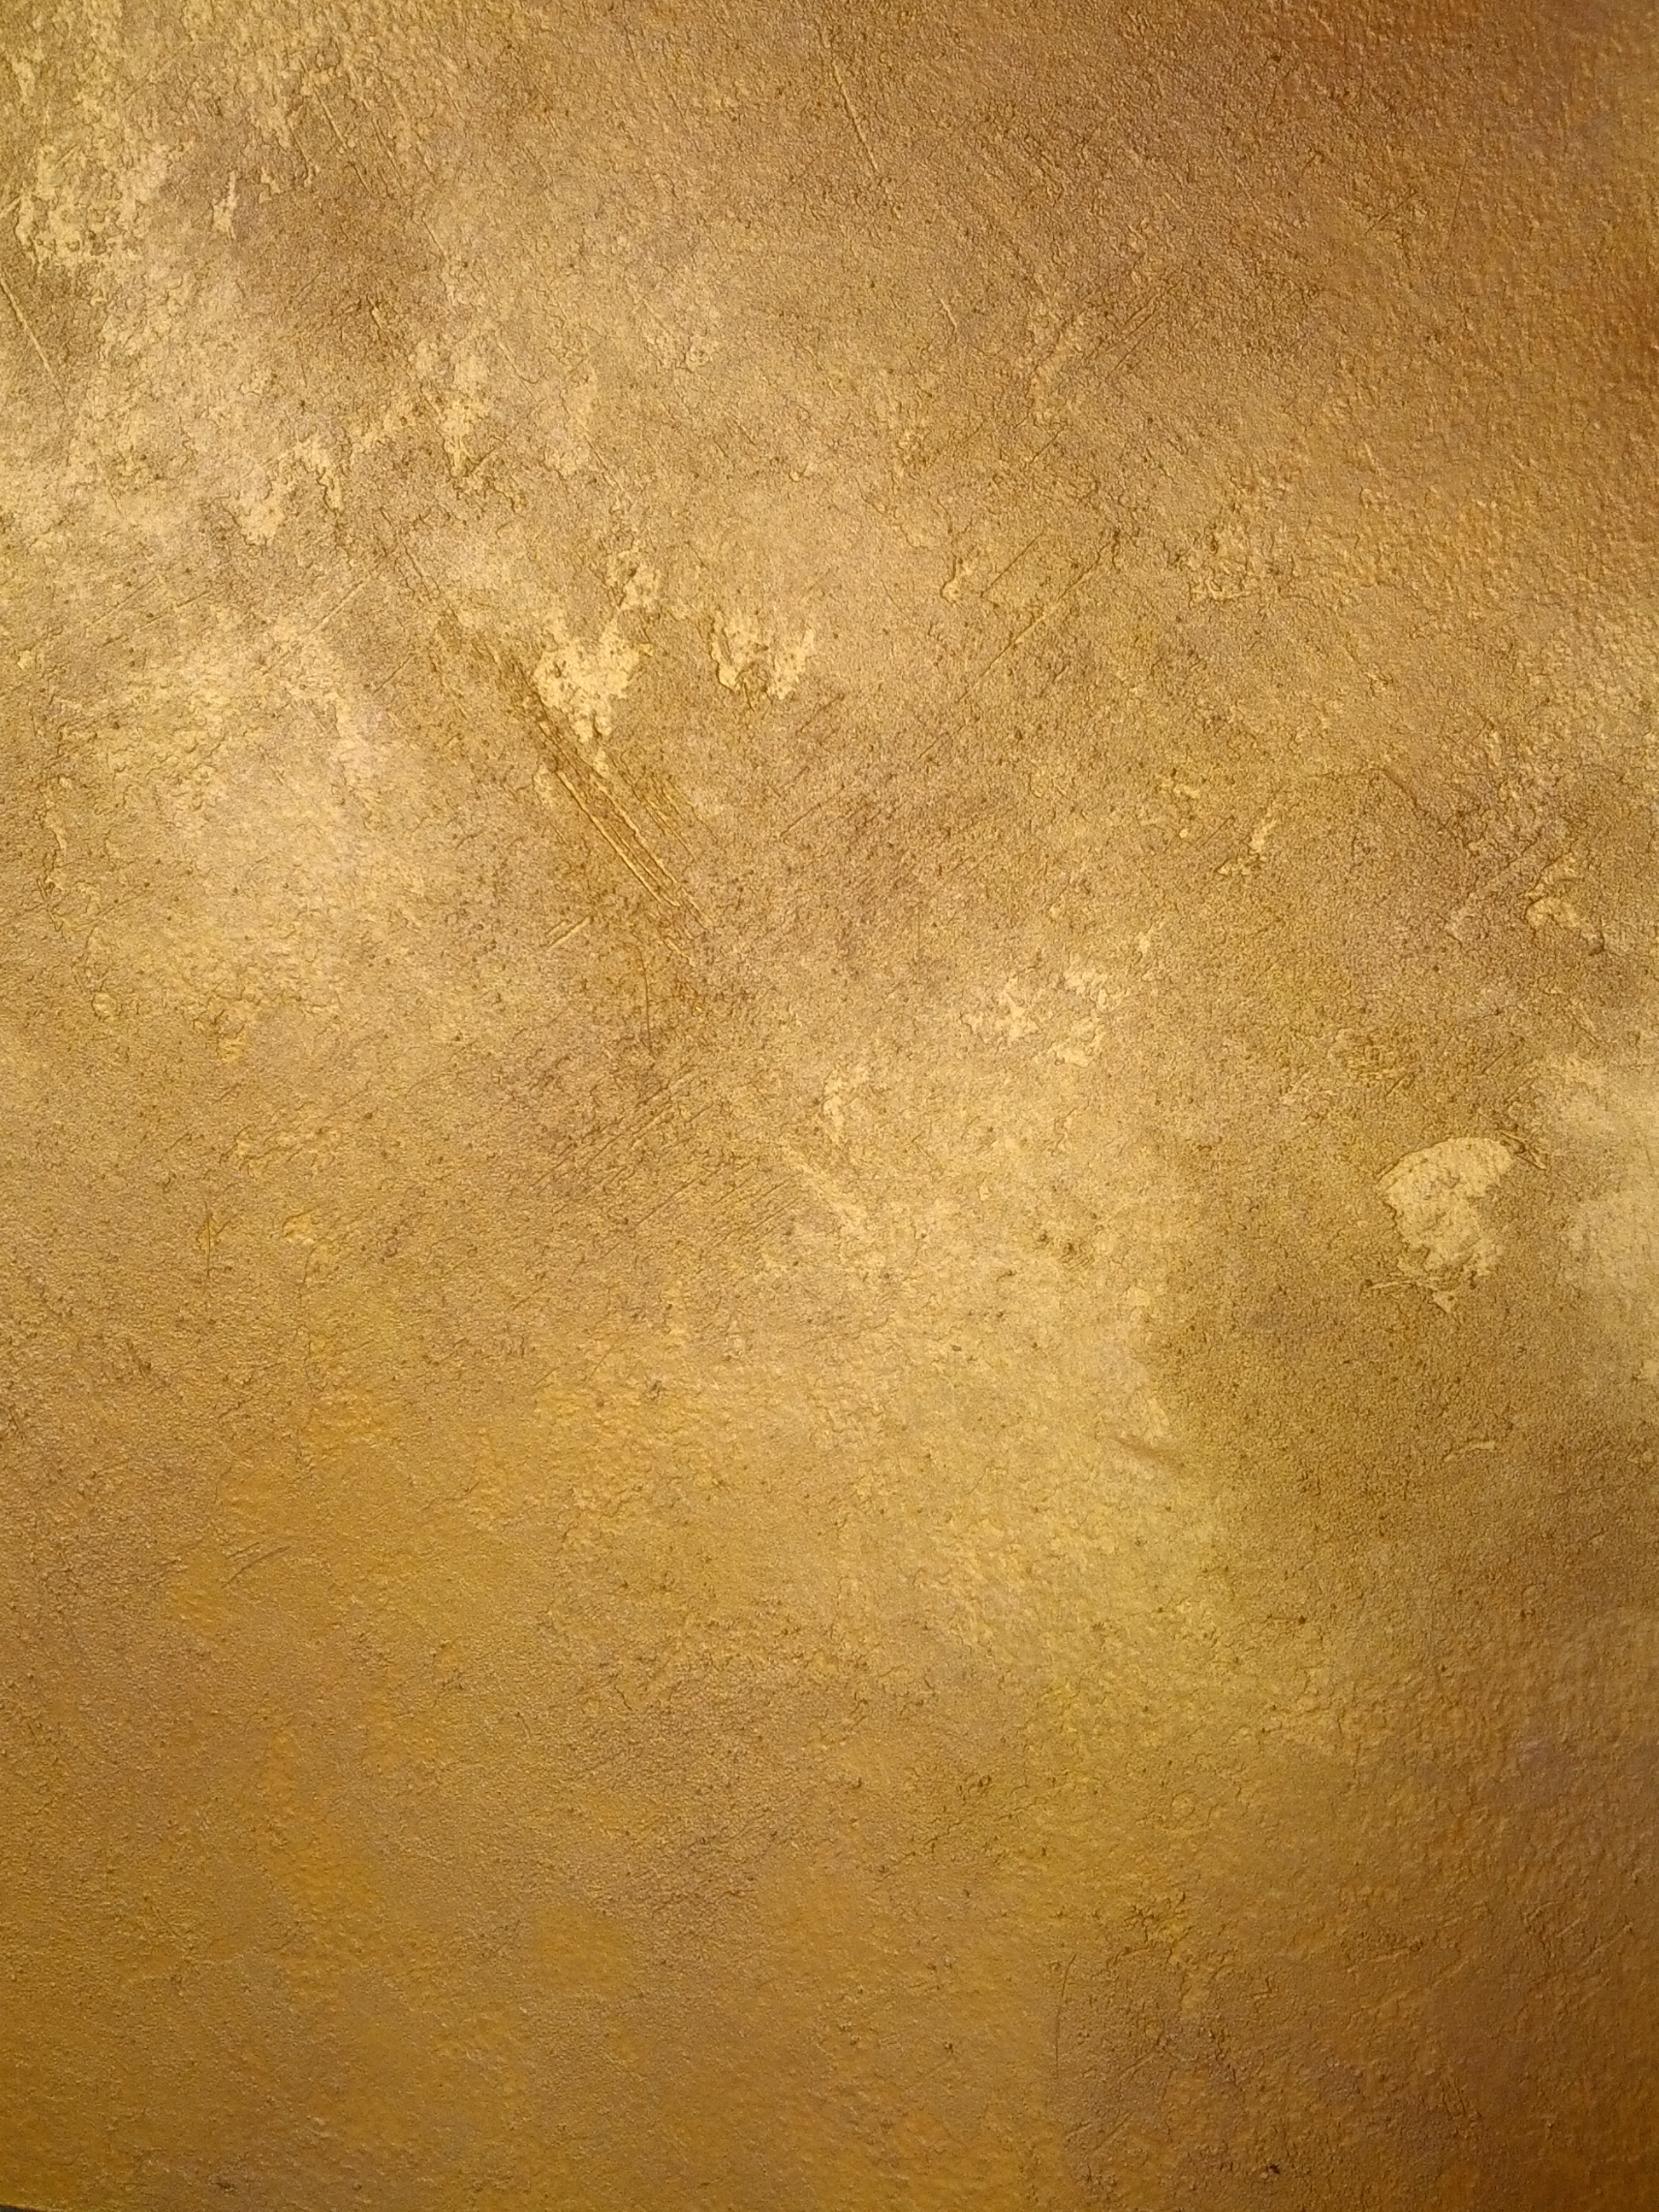 CEILING FINISHES | Patricia Delaney